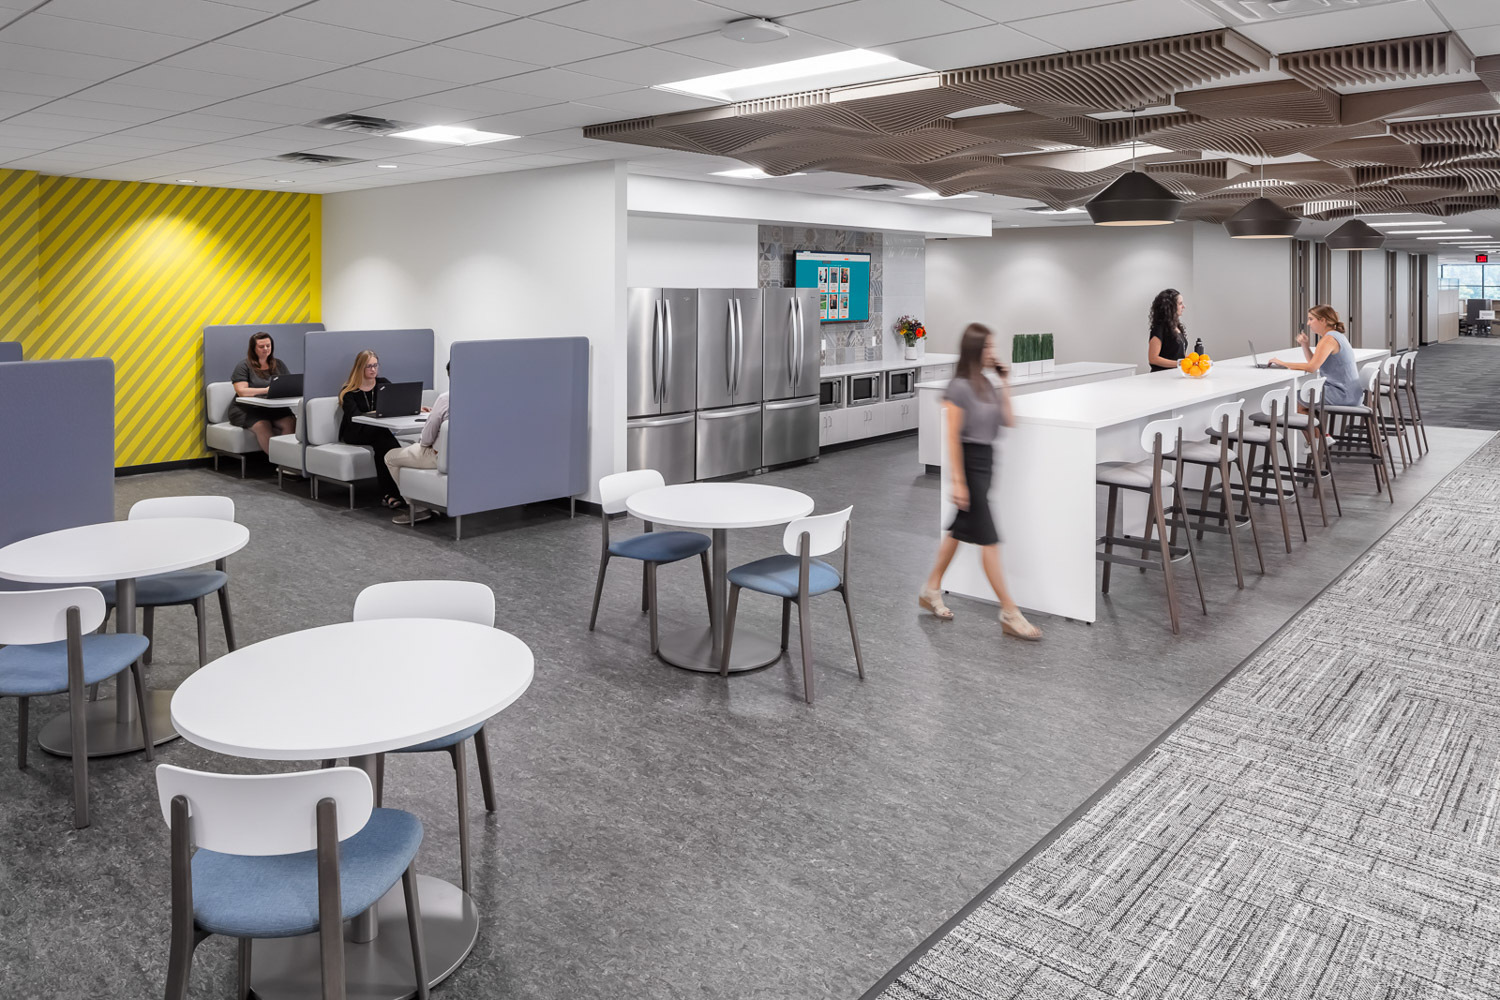 iSpace Environments Tennant Company Eden Prairie Minnesota Office Work Lounge Ceiling Acoustical Panels and Kitchenette